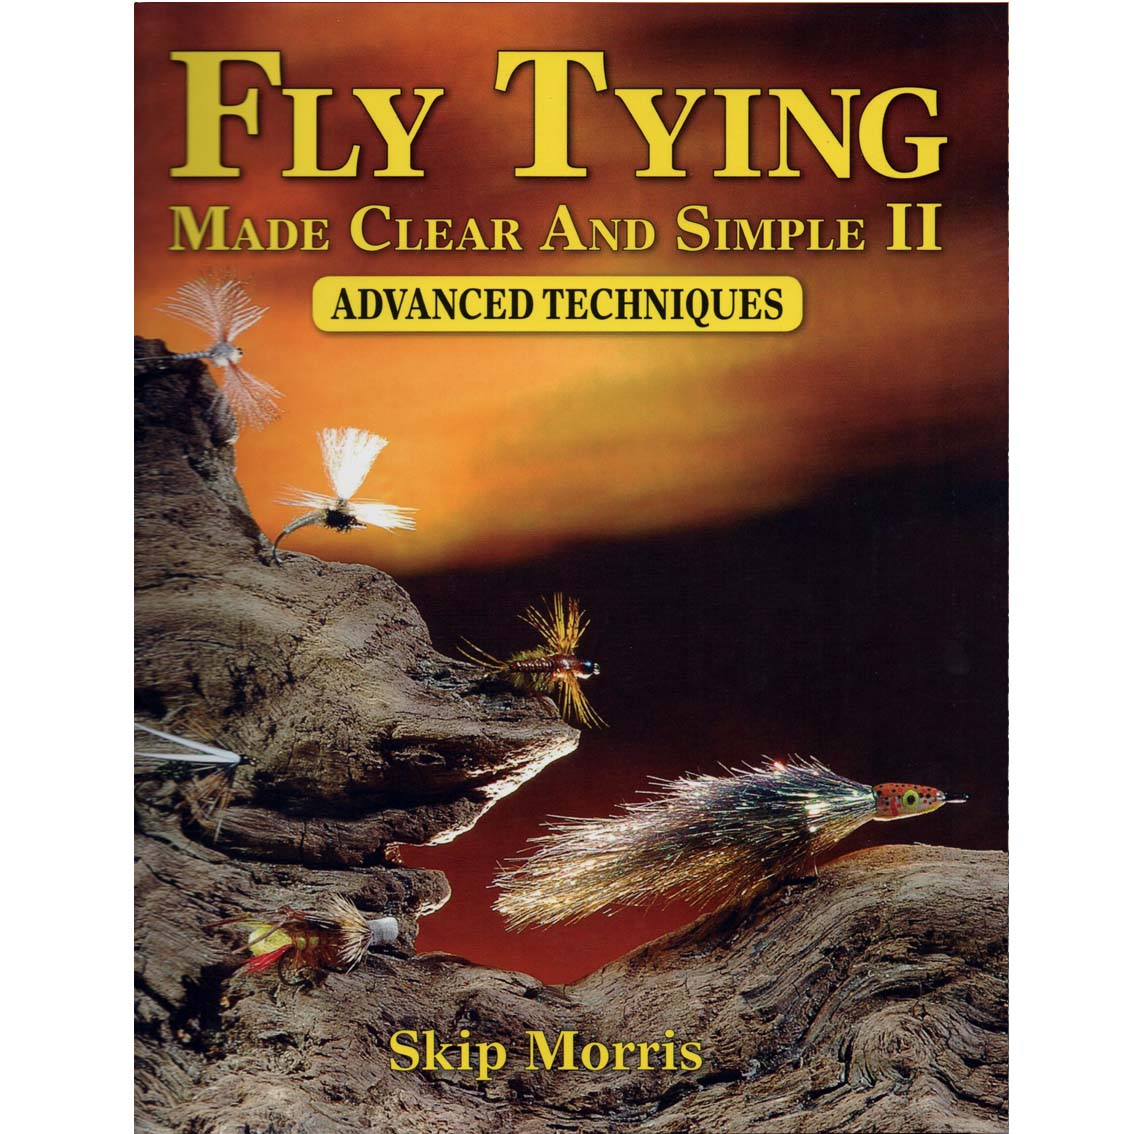 Livro Fly Tying Made Clear and Simple II: Advanced Techniques (Skip Morris)